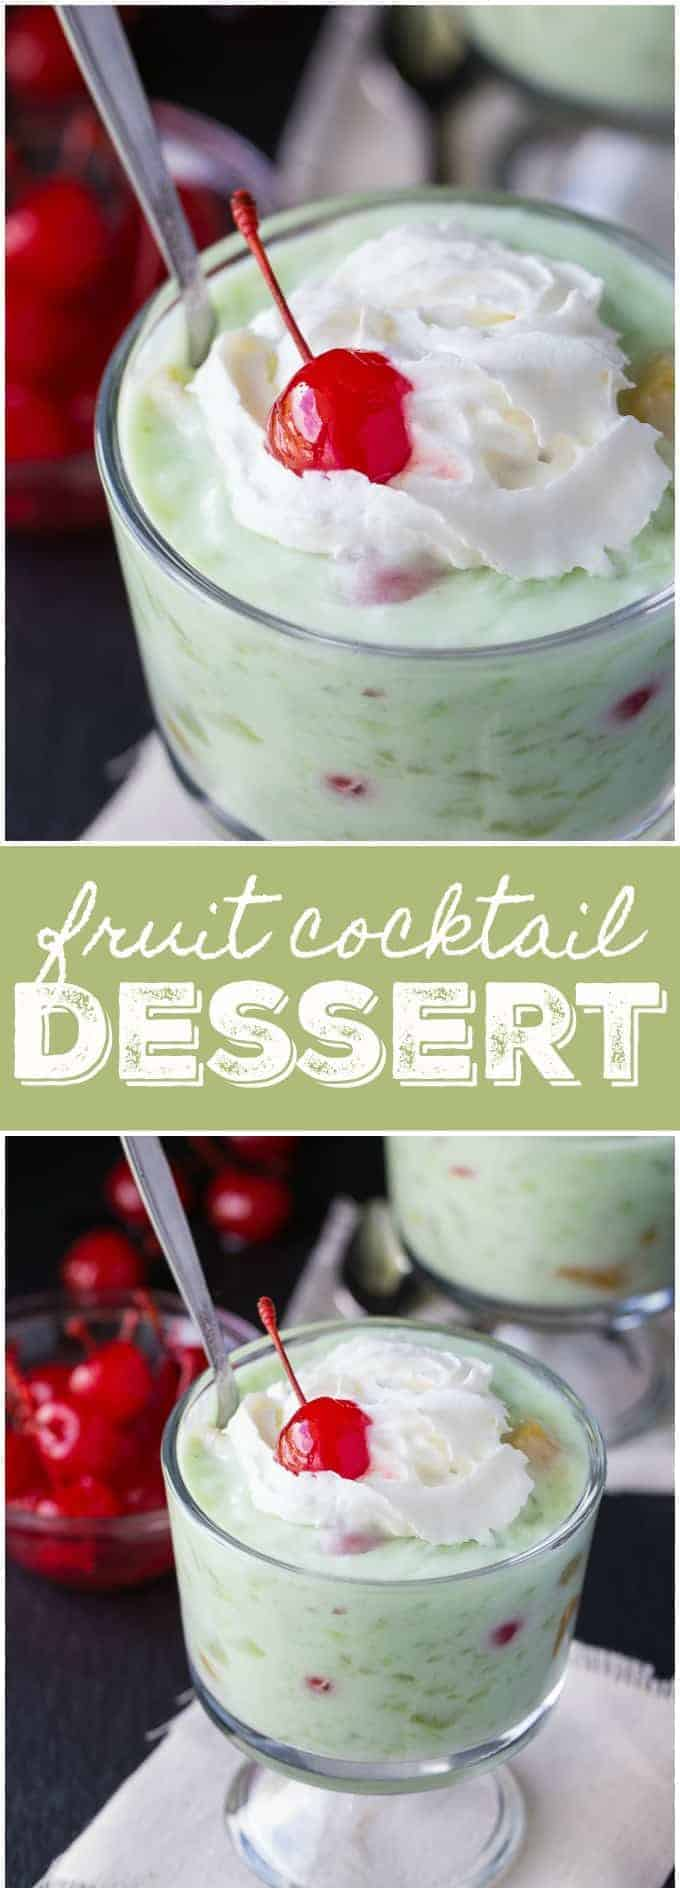 Fruit Cocktail Dessert - A vintage Jell-o treat! Stunningly green for your easy Easter dessert. It's so creamy, sweet and full of yummy fruit flavor!